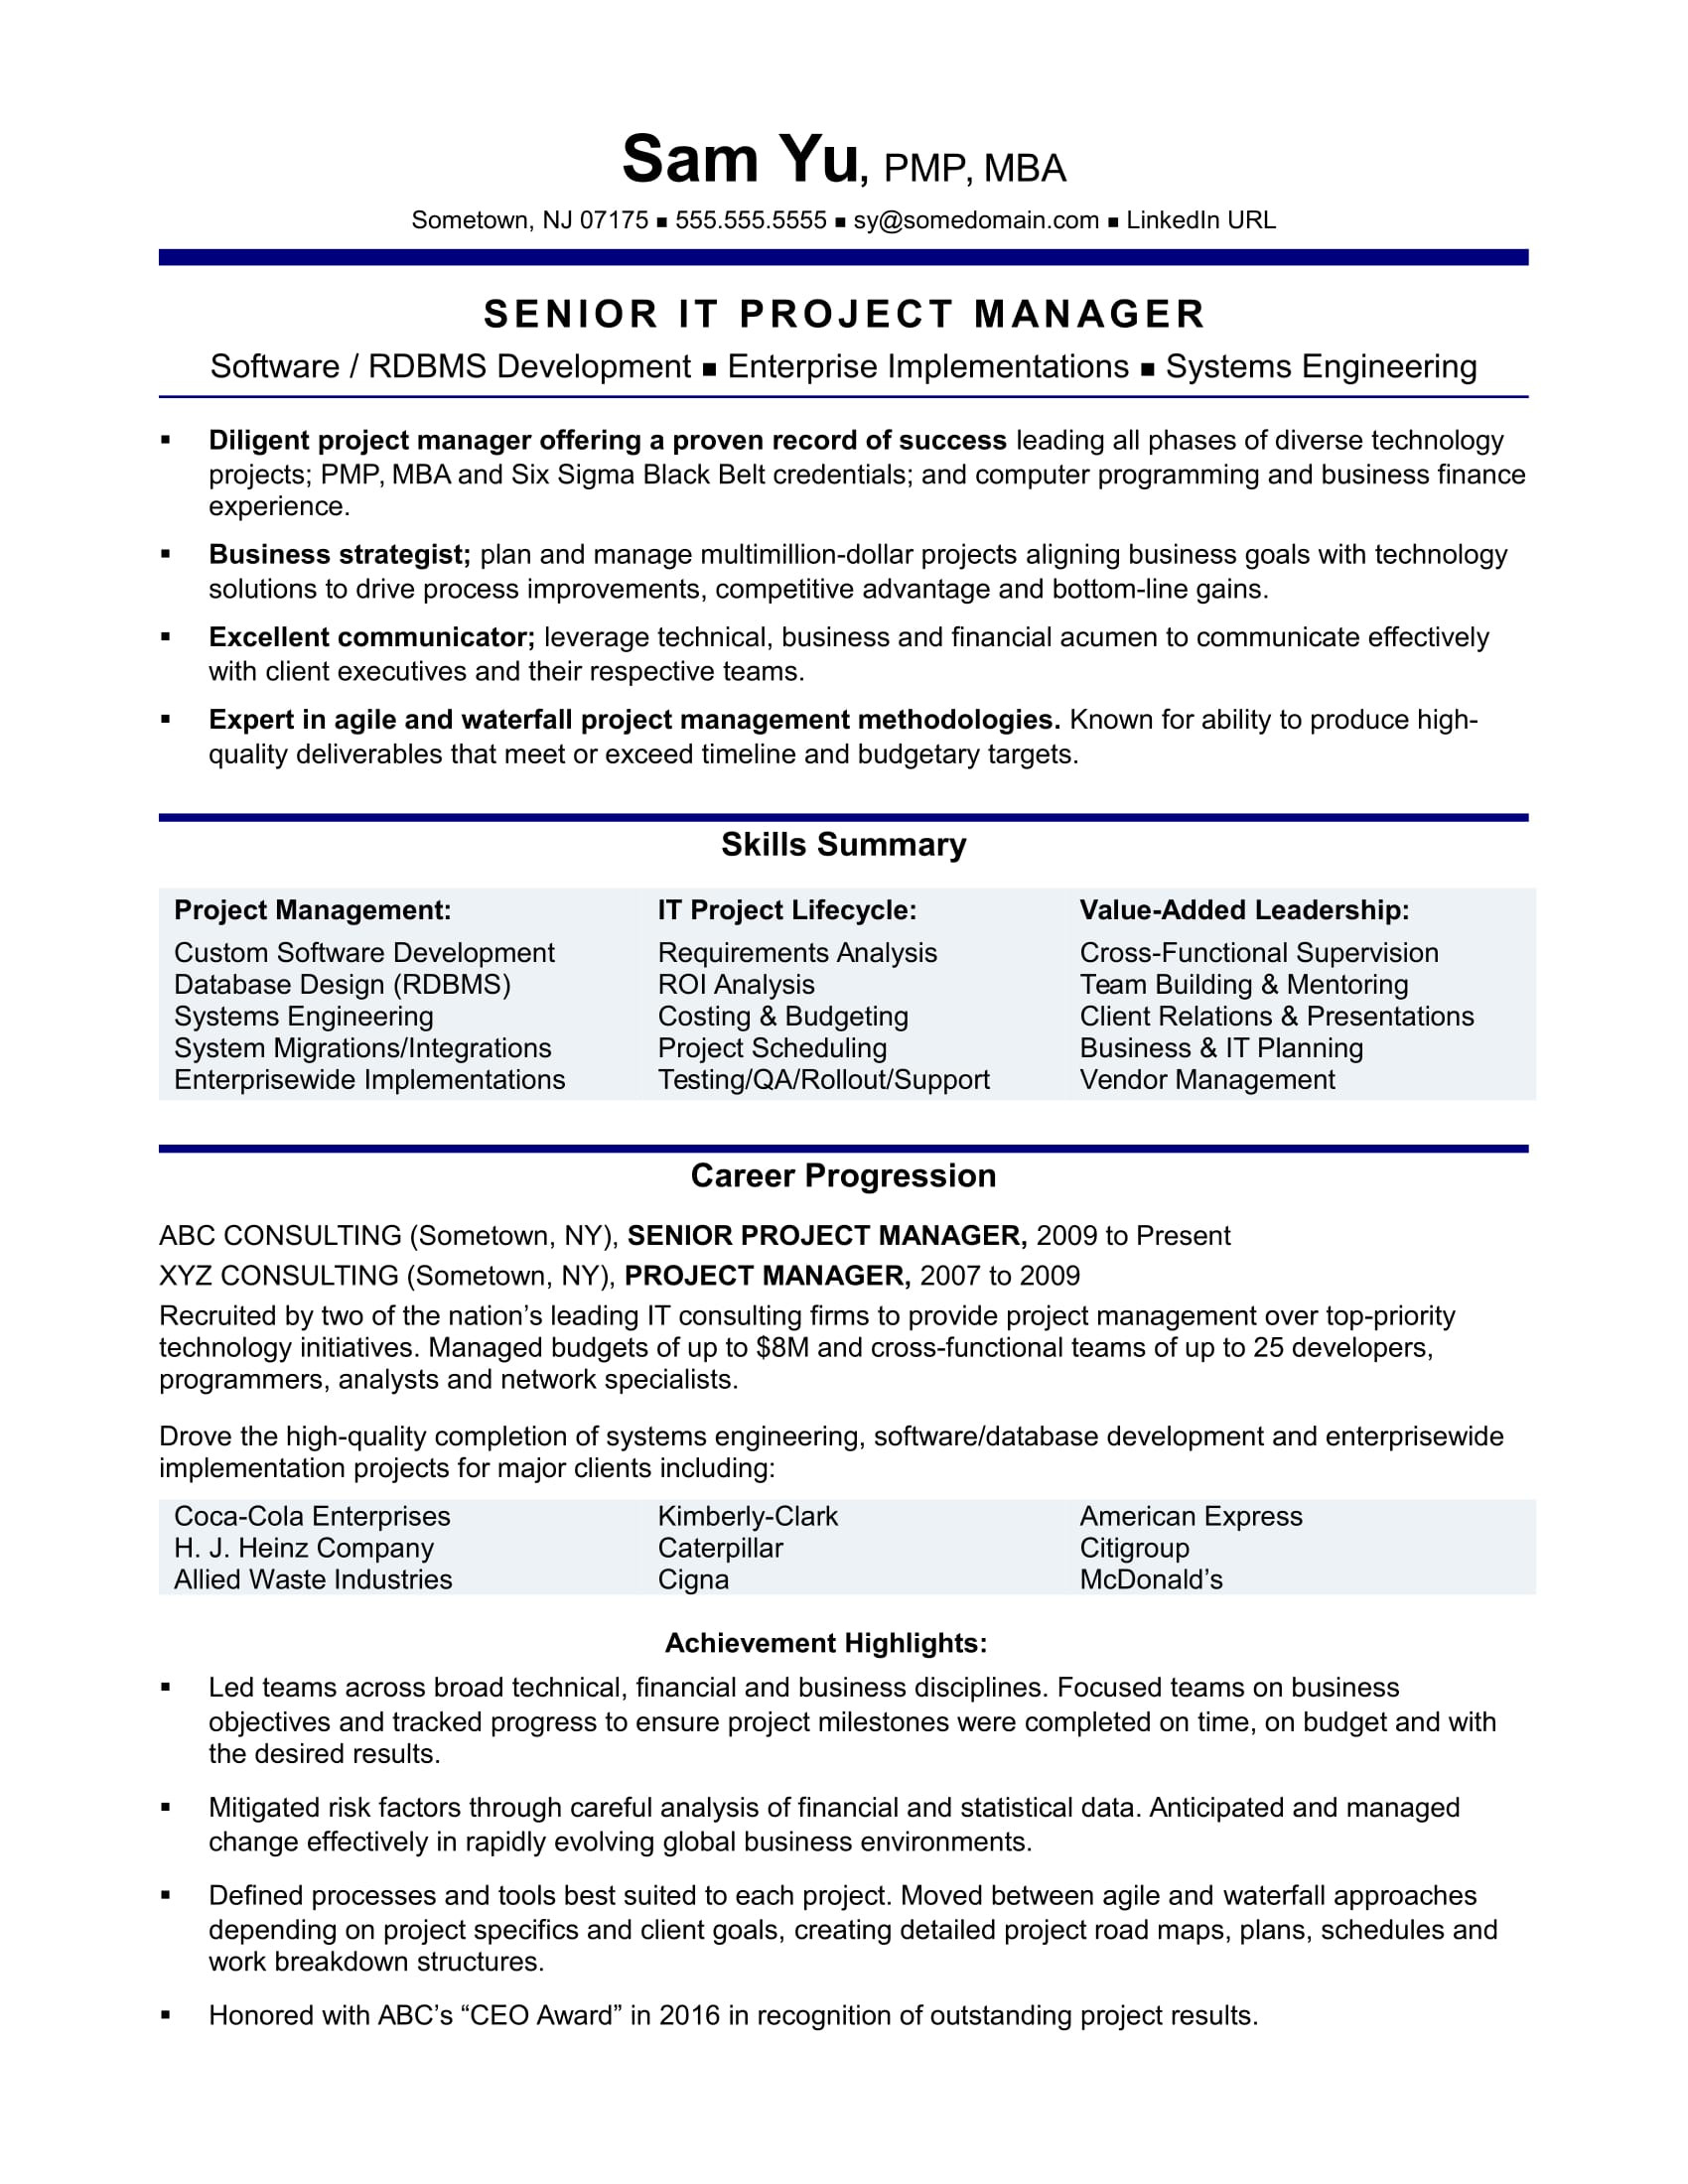 Project Management Skills Resume Experienced It Project Manager Resume Sample